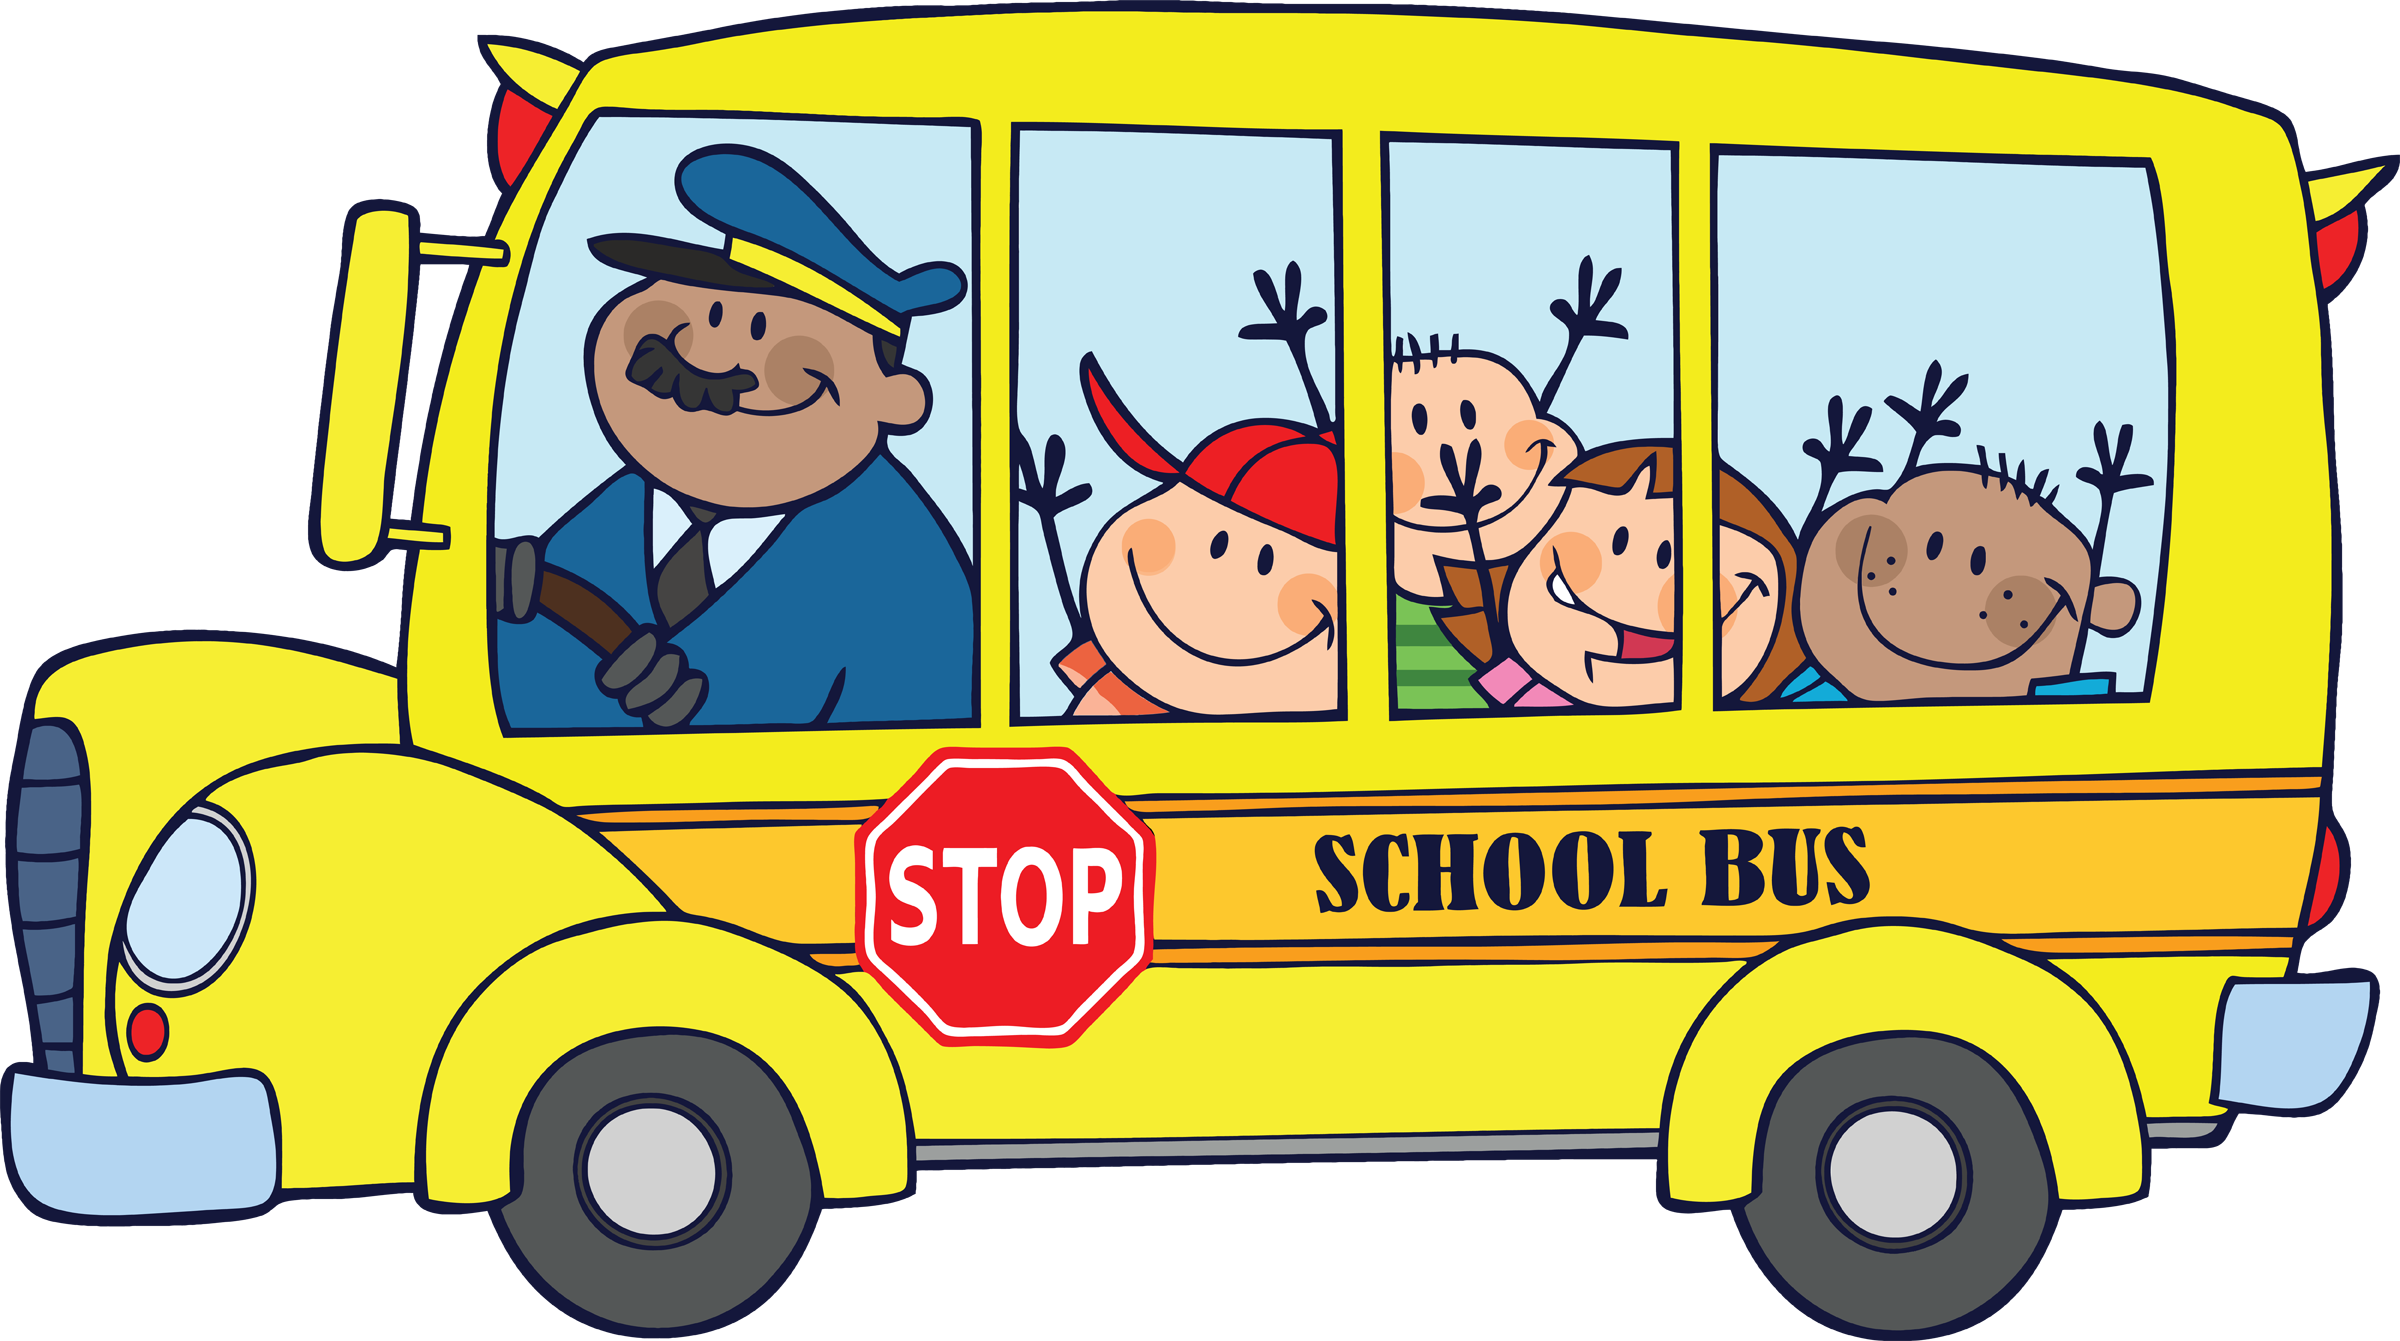 School bus front clipart image transparent School Bus Driver Quotes | Clipart Panda - Free Clipart Images ... image transparent